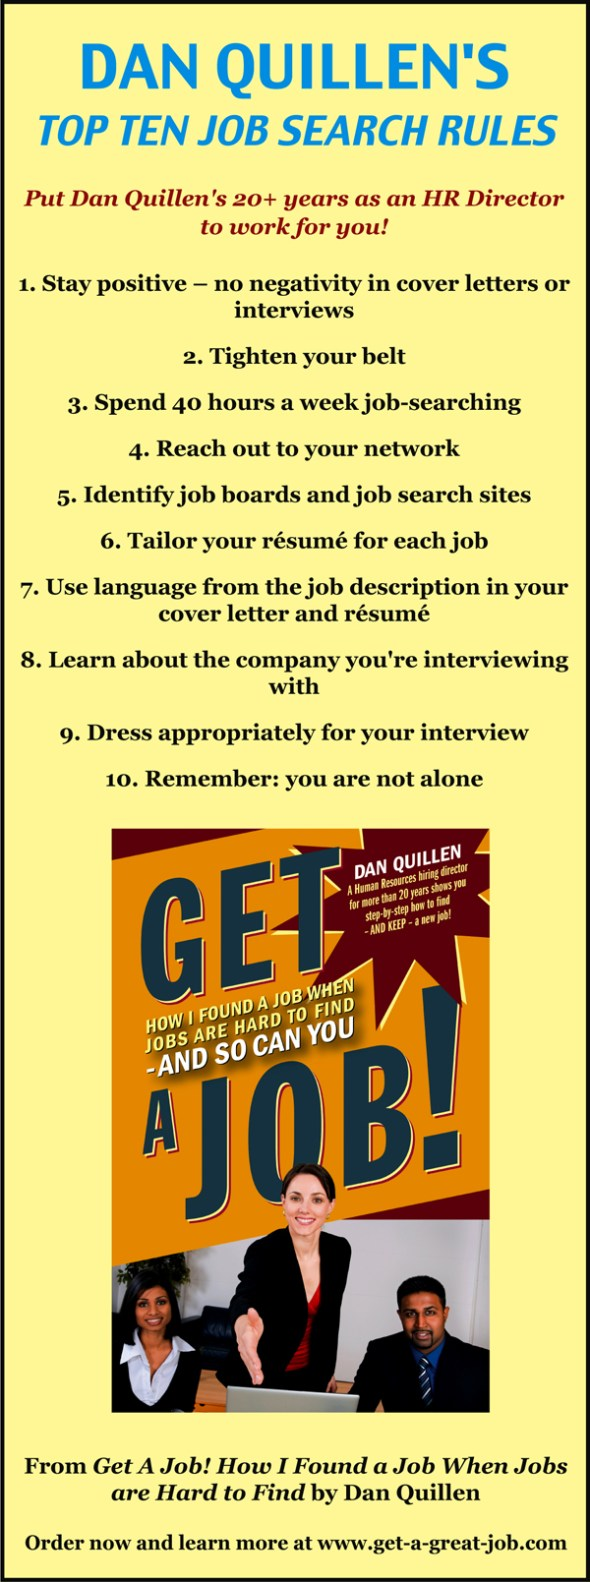 Top 10 Job Search Rules